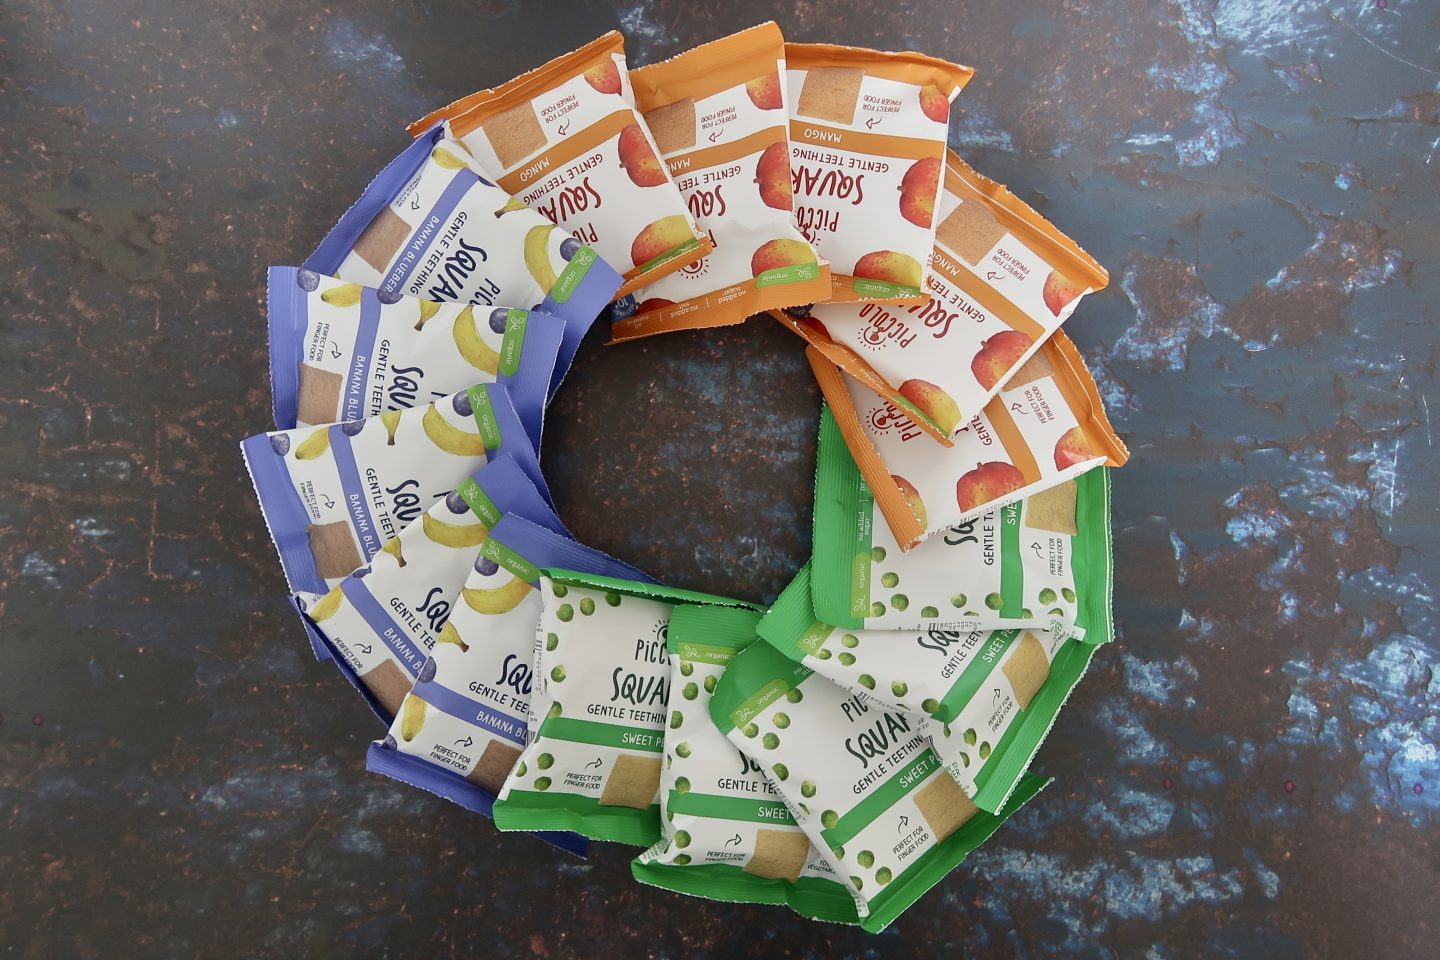 Piccolo snack packets laid out in a circle